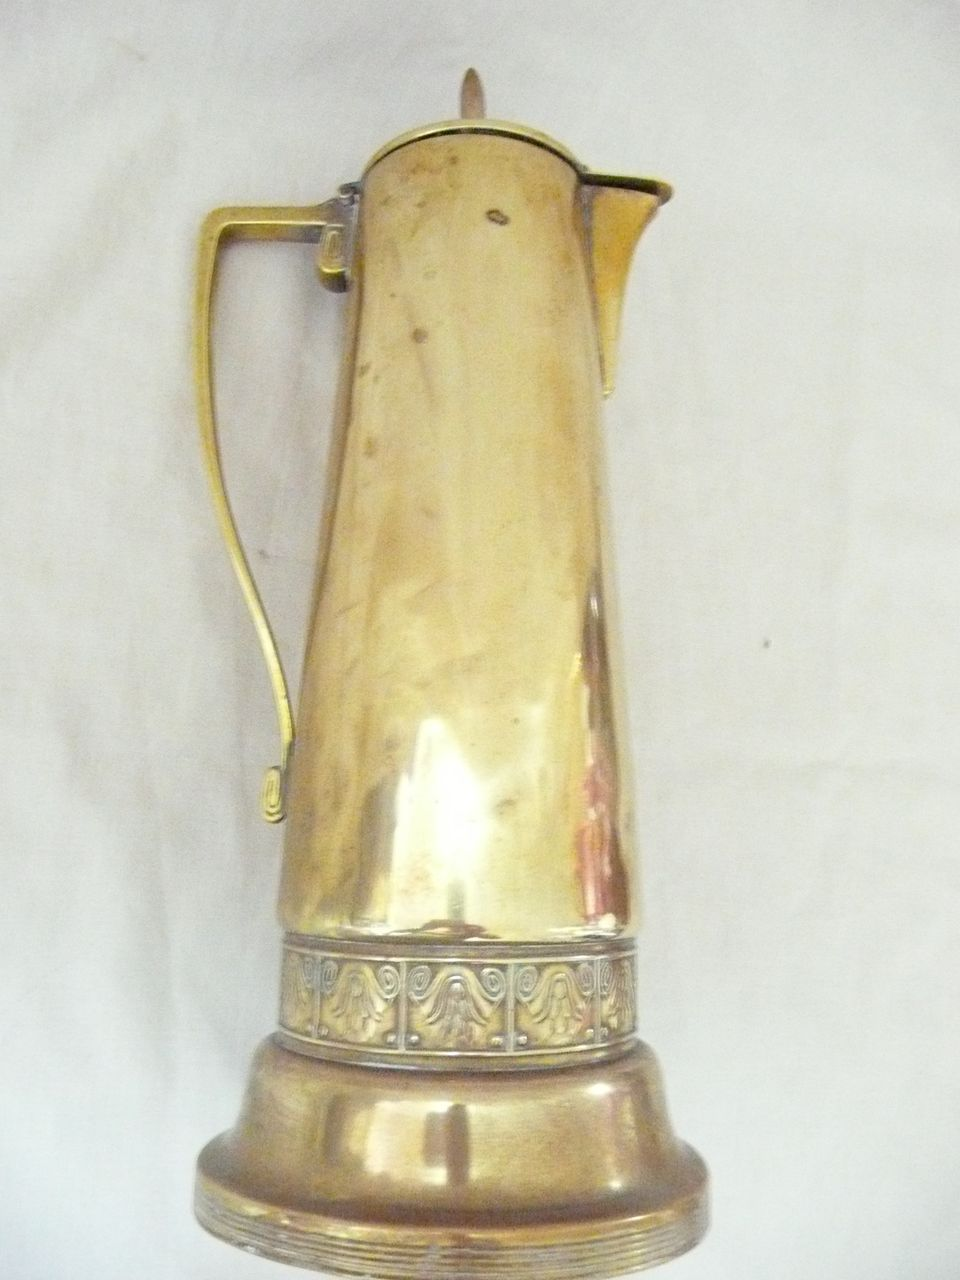 Tall Art Nouveau  Jug - Gebruder Bing - Germany-Circa 1890